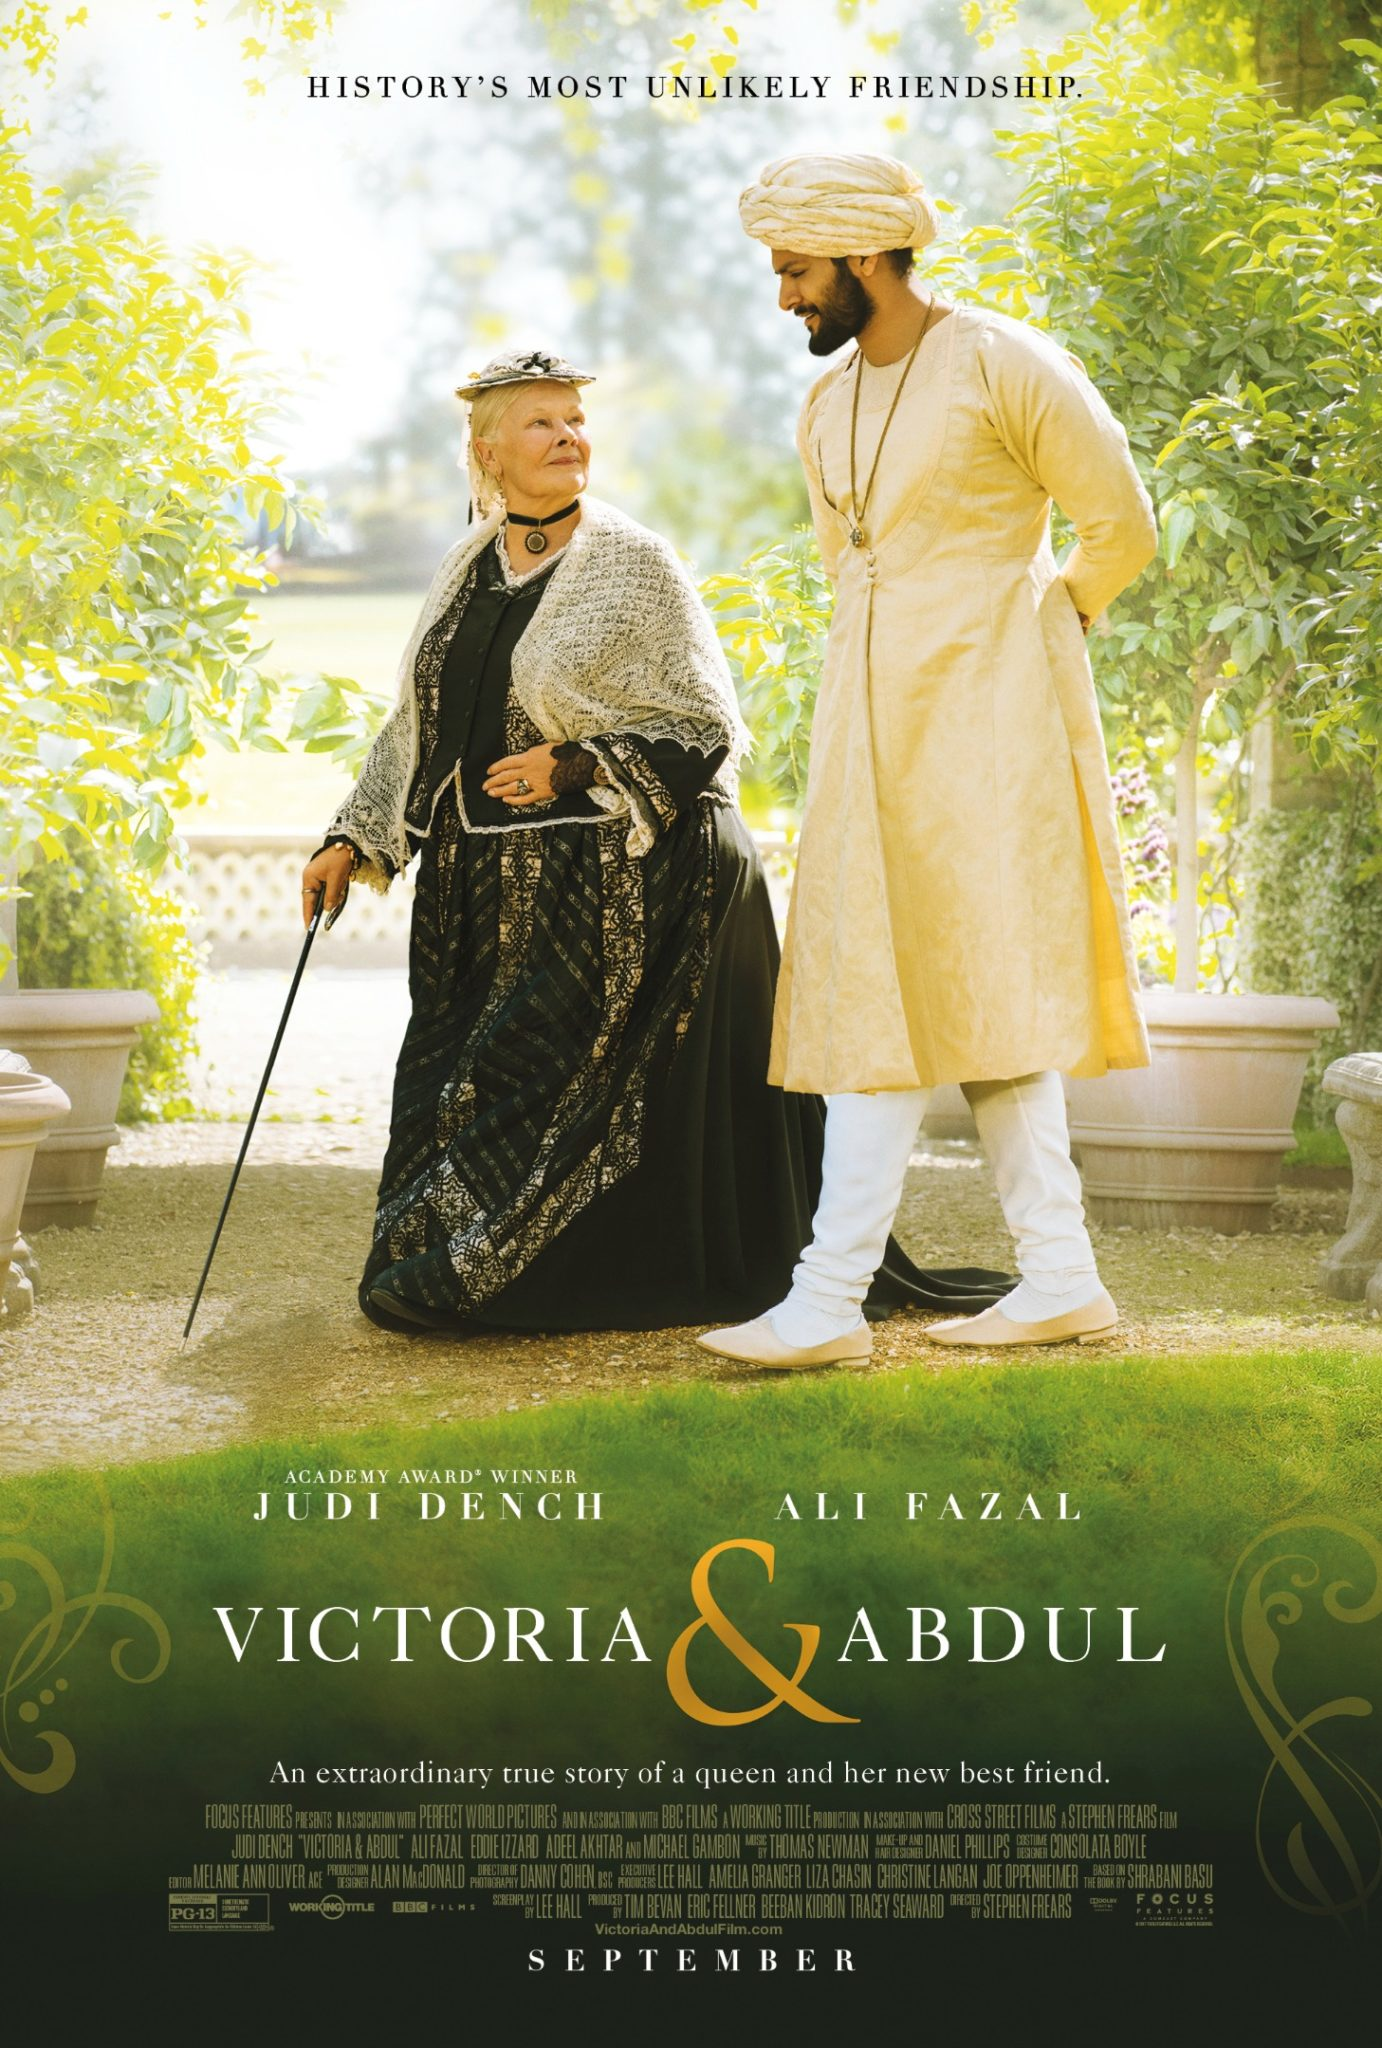 Watch the Official Trailer for Victoria & Abdul Starring Judi Dench